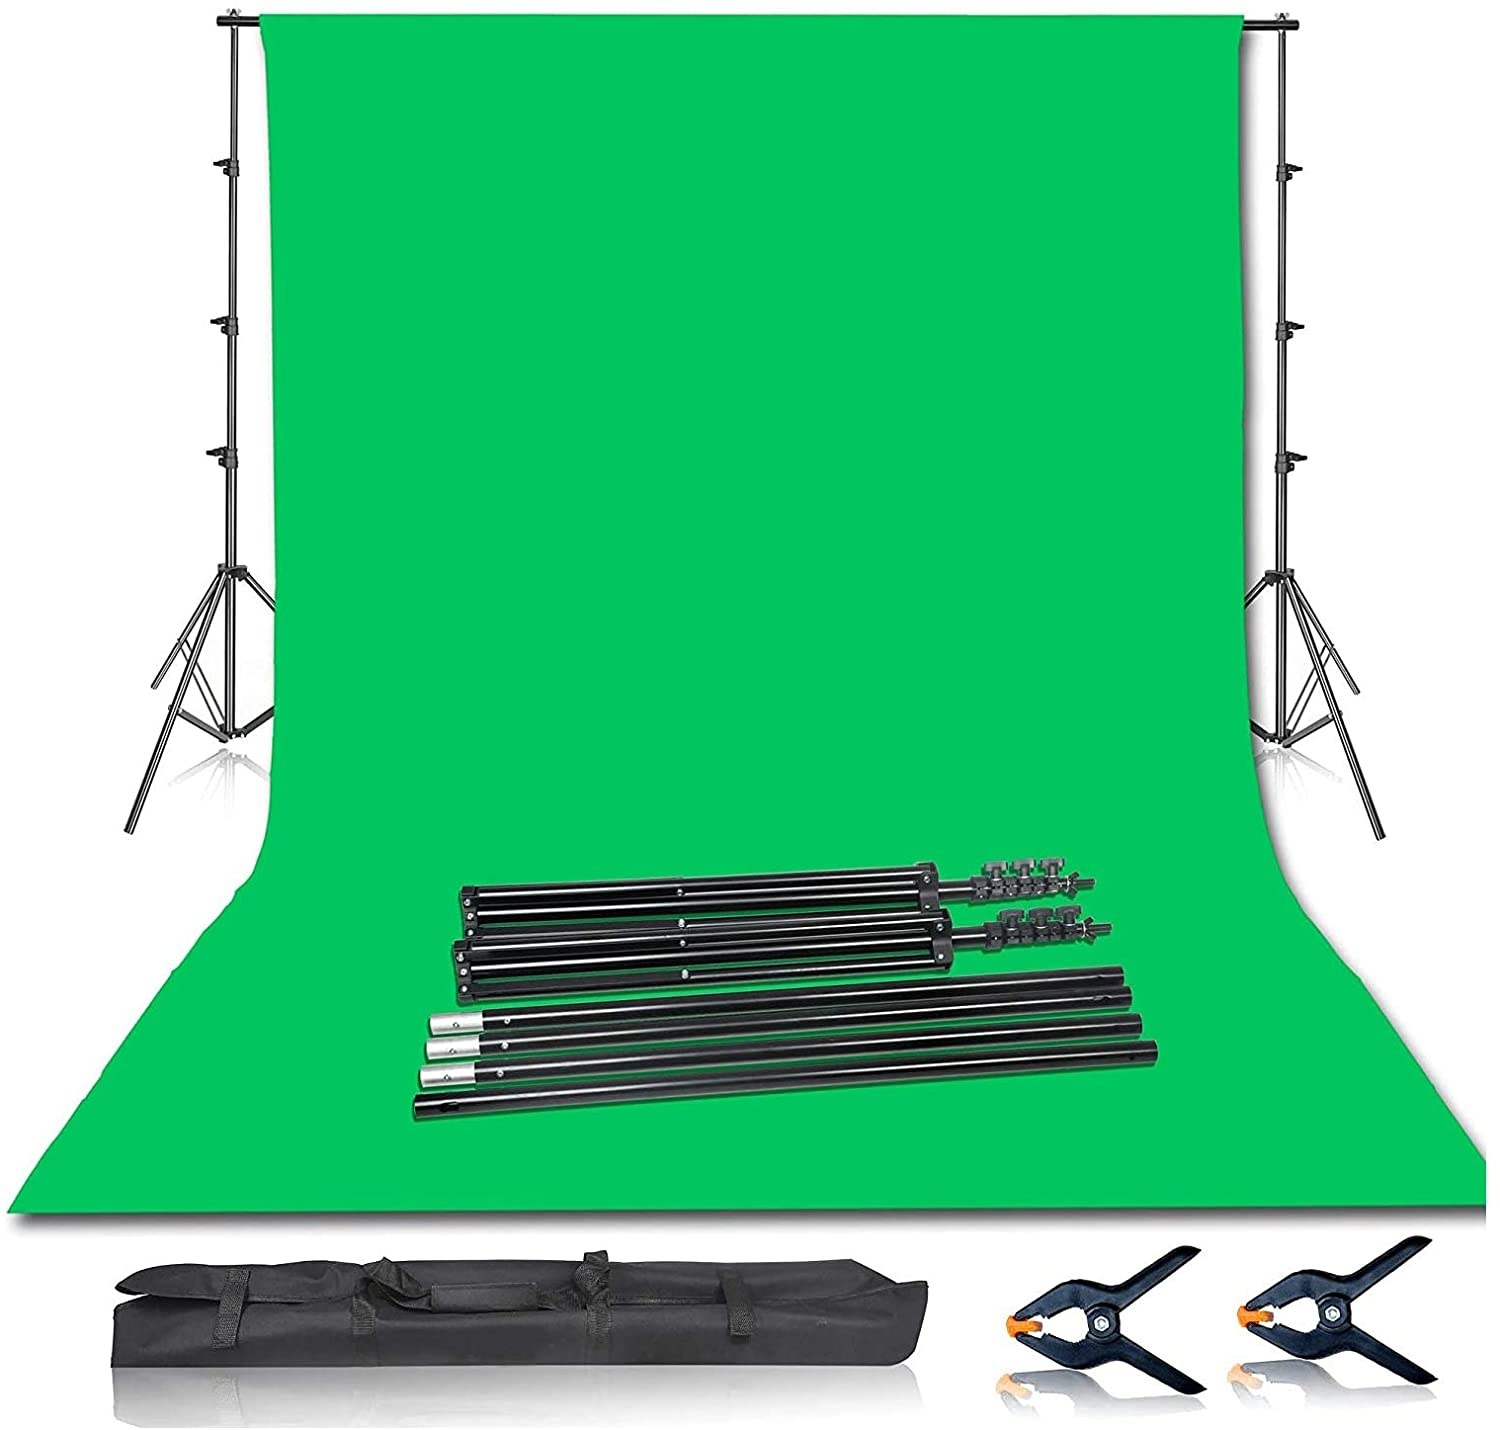 the Emart Photo Video Studio 8.5 x 10ft Green Screen Backdrop Stand Kit